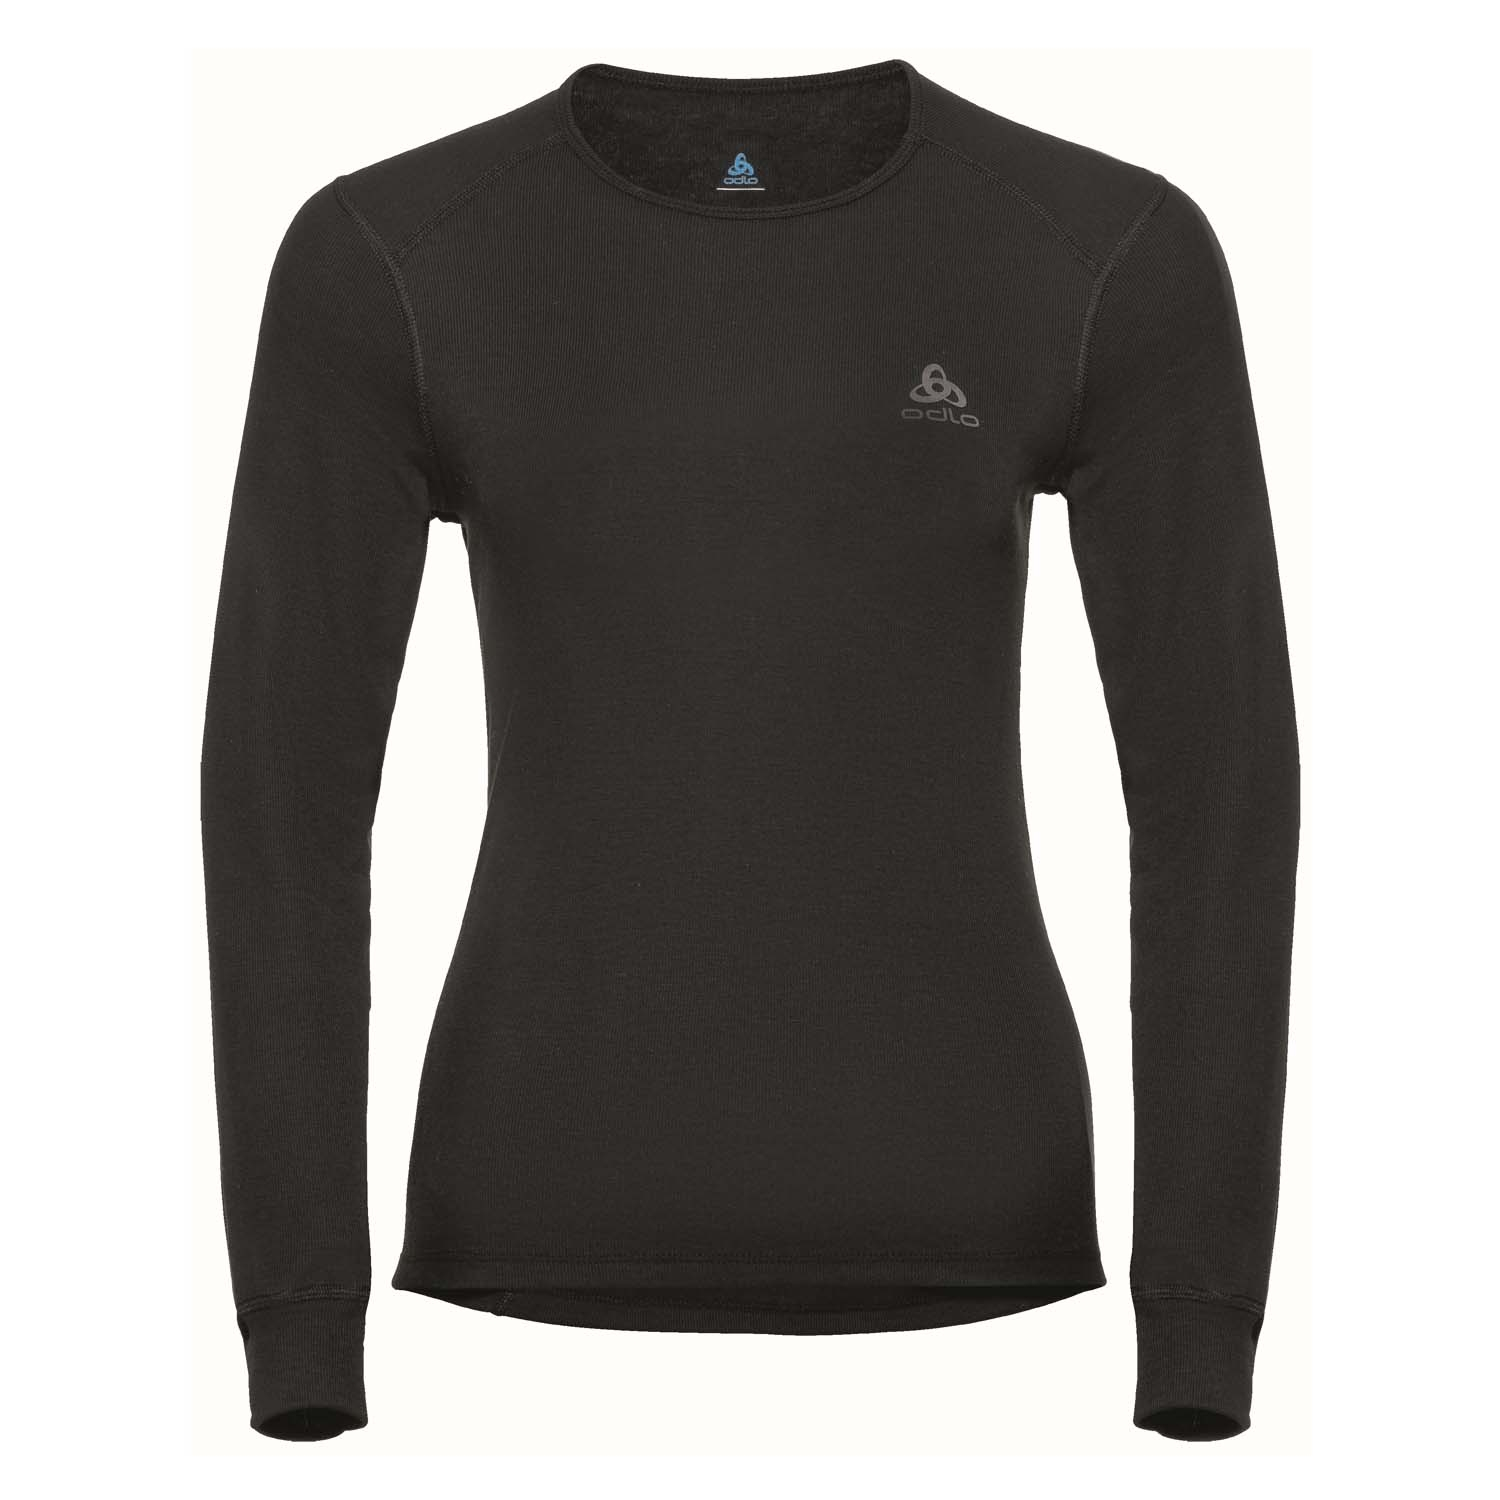 Odlo Womens Active Warm Long Sleeved Crew Neck Top Black 2020